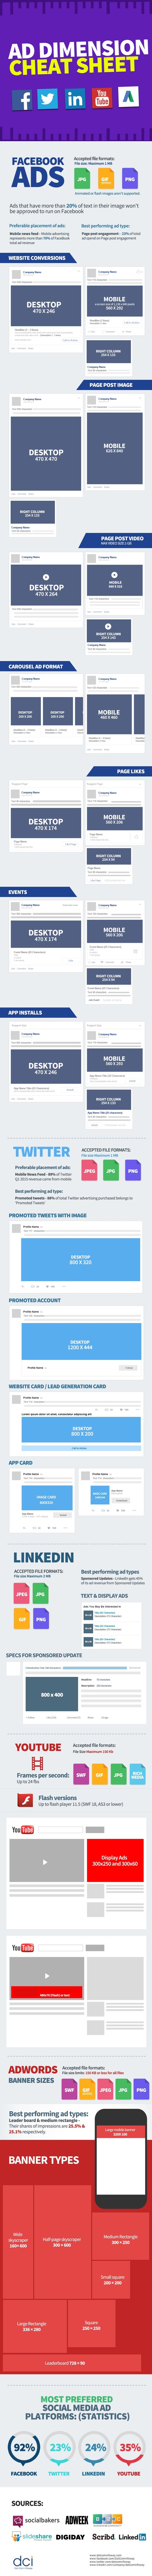 Social Media Ad Dimensions Cheat Sheet #Infographic #facebookads #twitterads | MarketingHits | Scoop.it